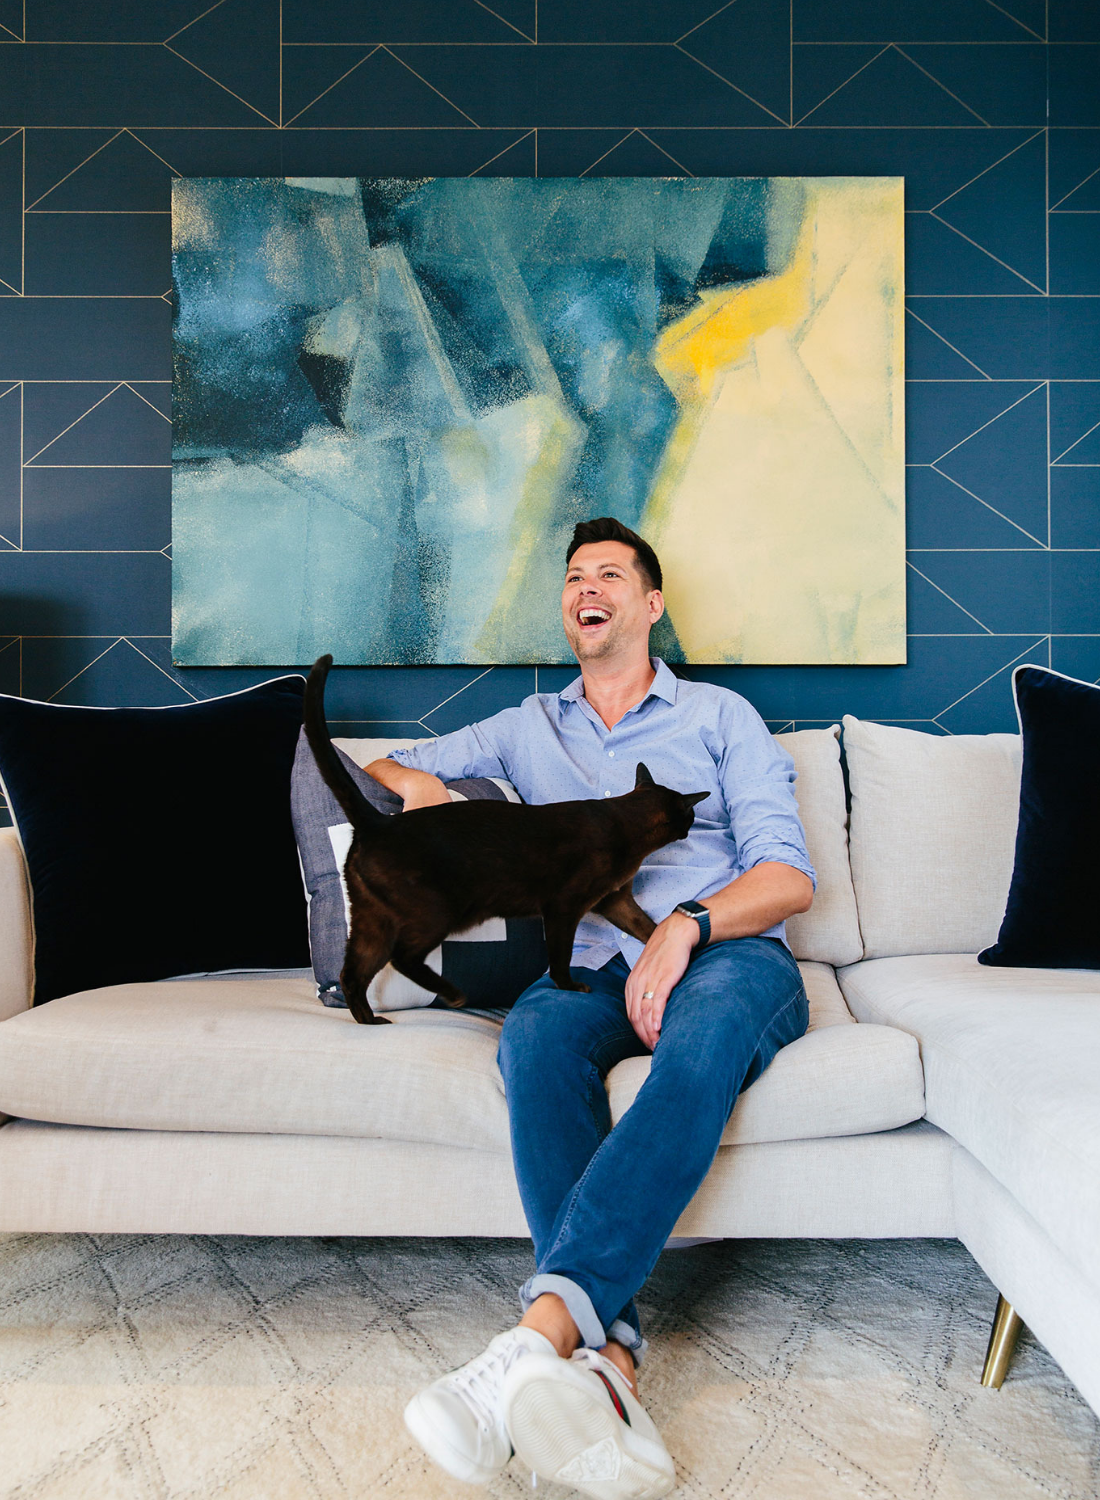 Happy home man laughing with cat in interior designed london flat